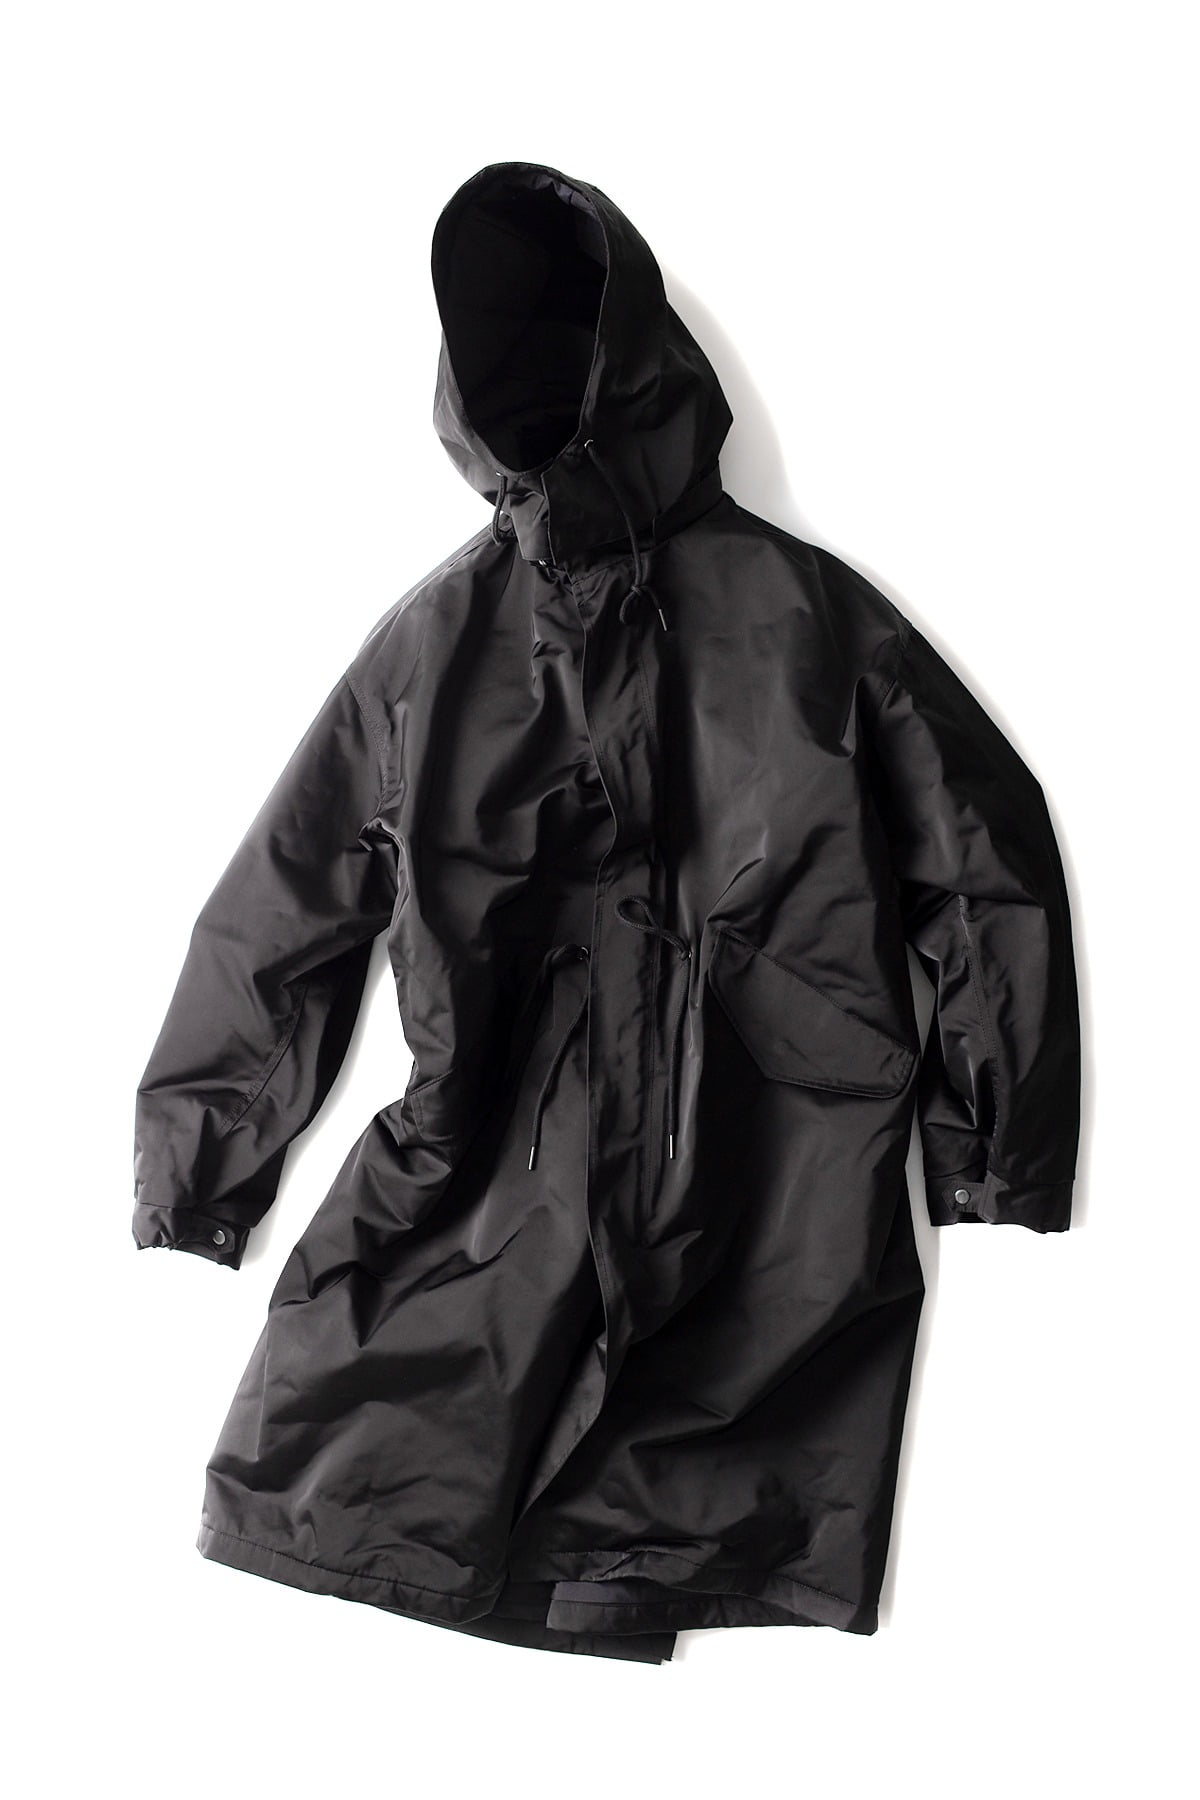 BIRTHDAYSUIT : Fishtail Parka (Black)